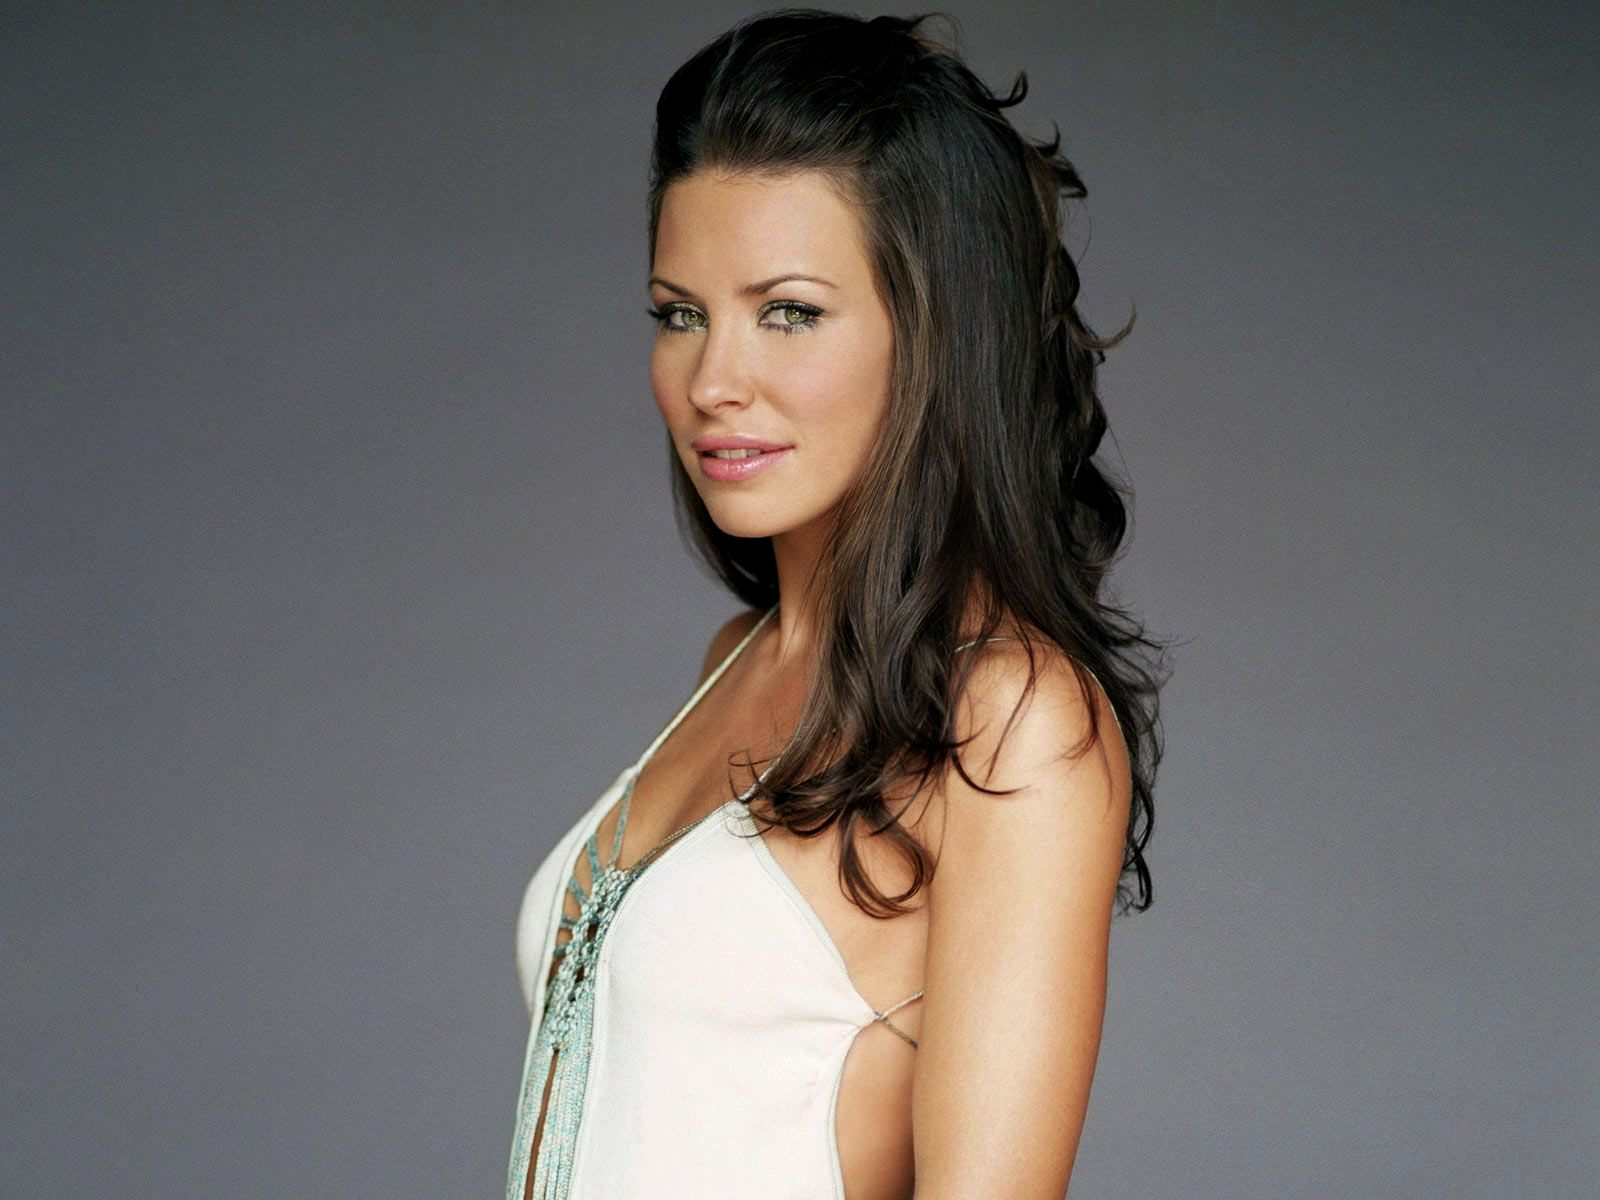 1600x1200 - Evangeline Lilly Wallpapers 14